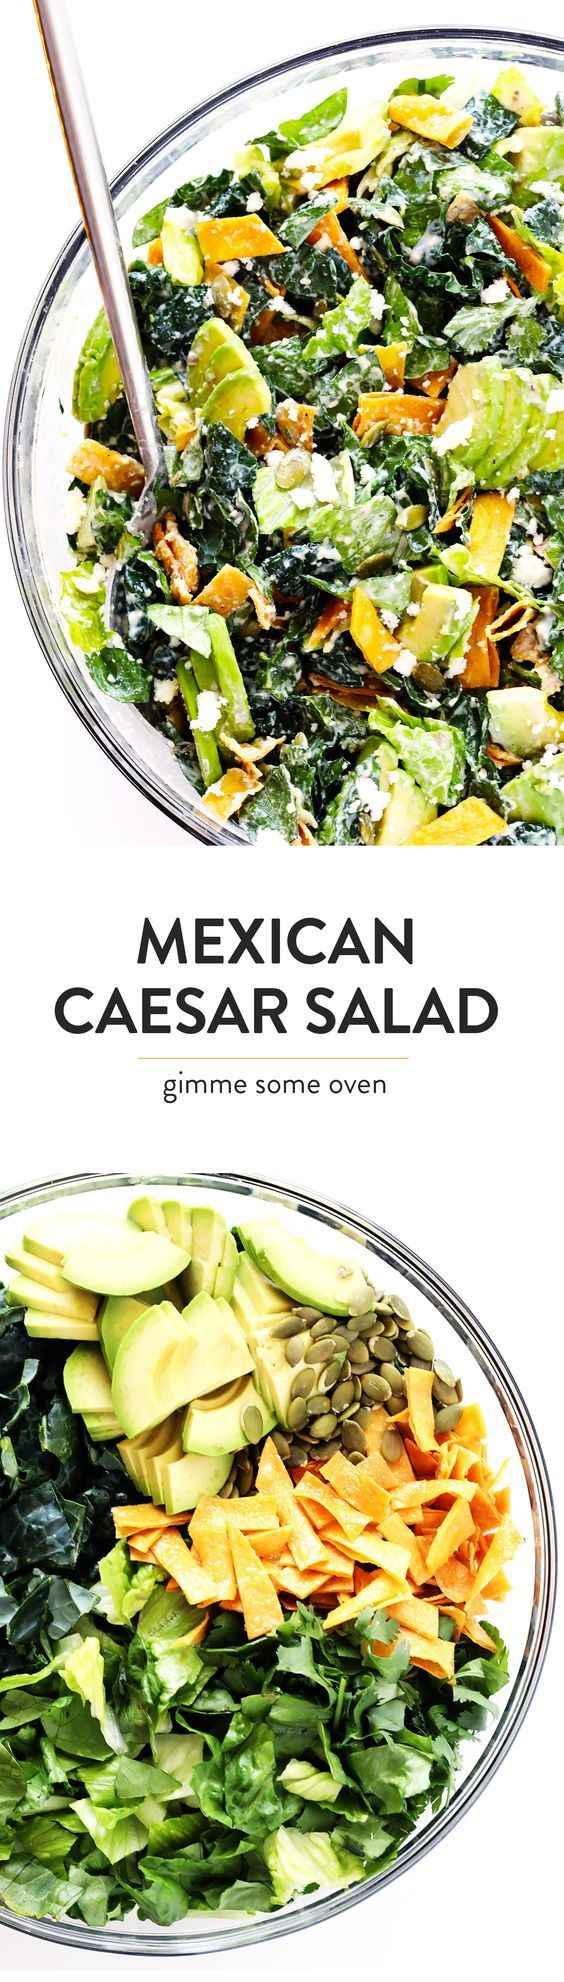 This Mexican Caesar Salad recipe is made with a lighter Greek Yogurt Caesar Dressing, crispy tortilla strips, cotija cheese (or queso fresco), pepitas, and fresh avocado...and it tastes SO fresh and flavorful and delicious!   gimmesomeoven.com